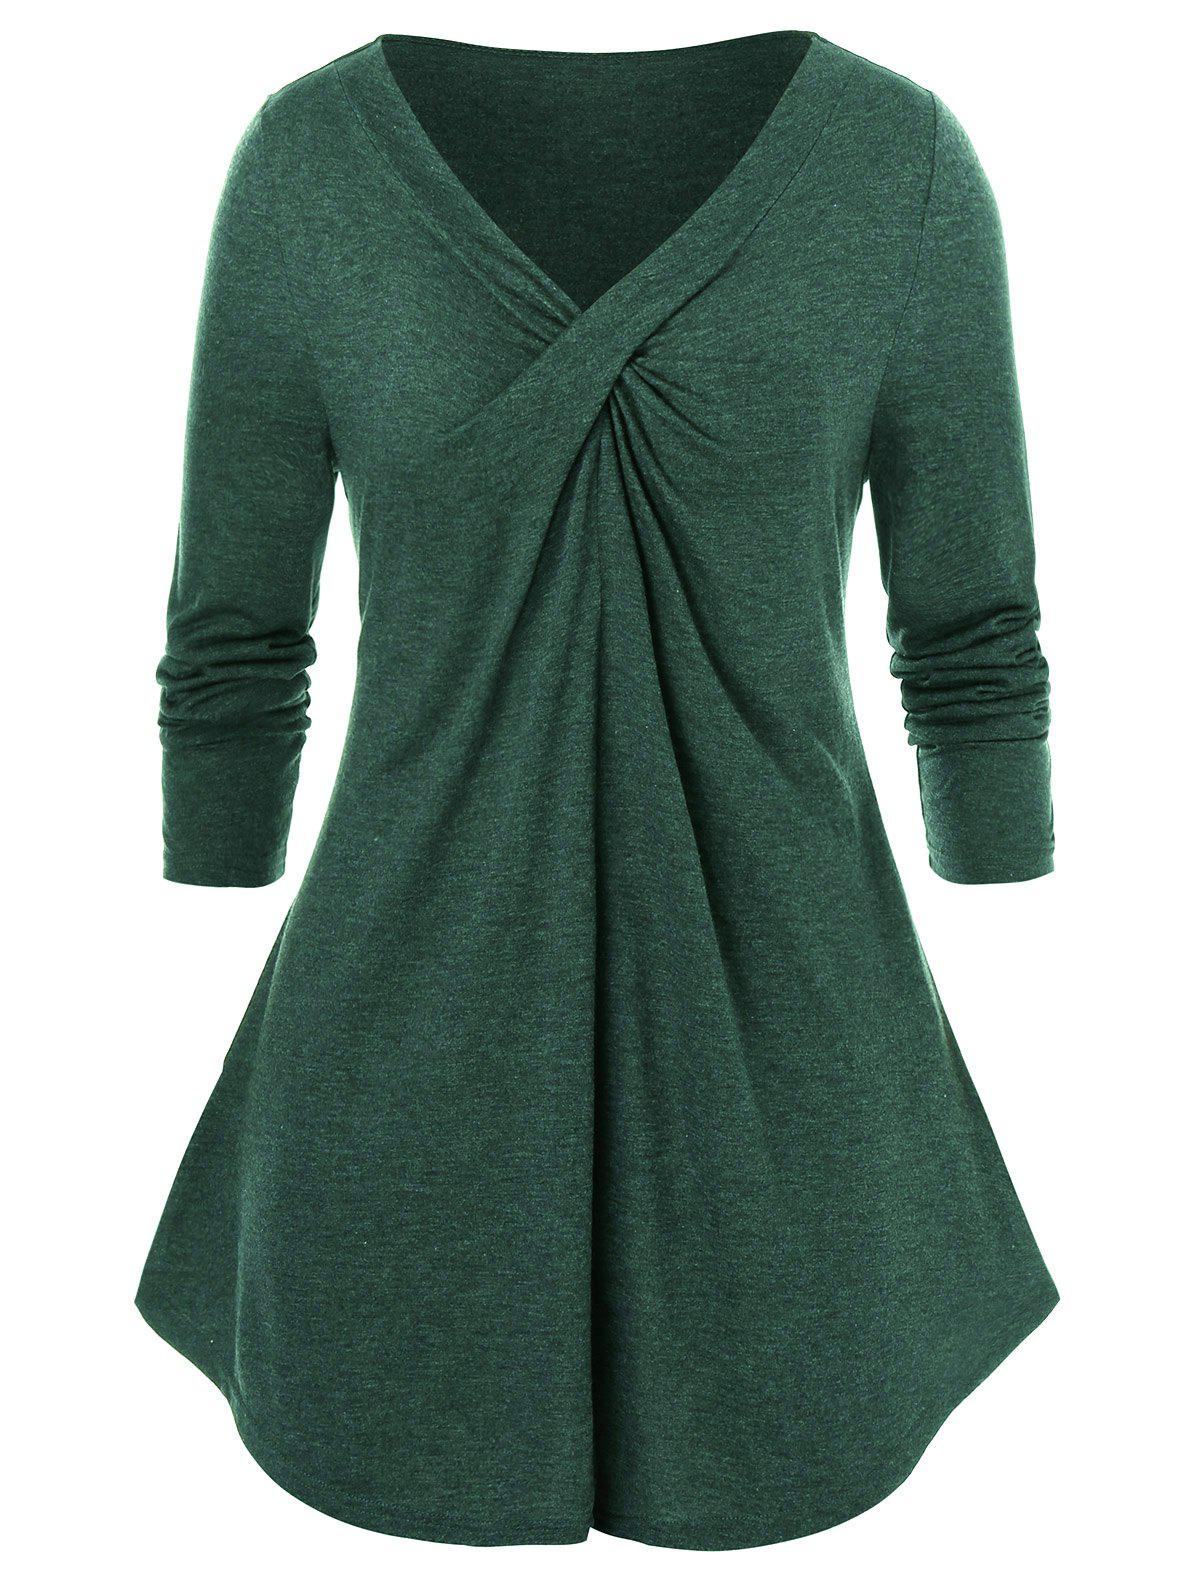 Long Sleeve Twist-front Plus Size Tunic Top фото